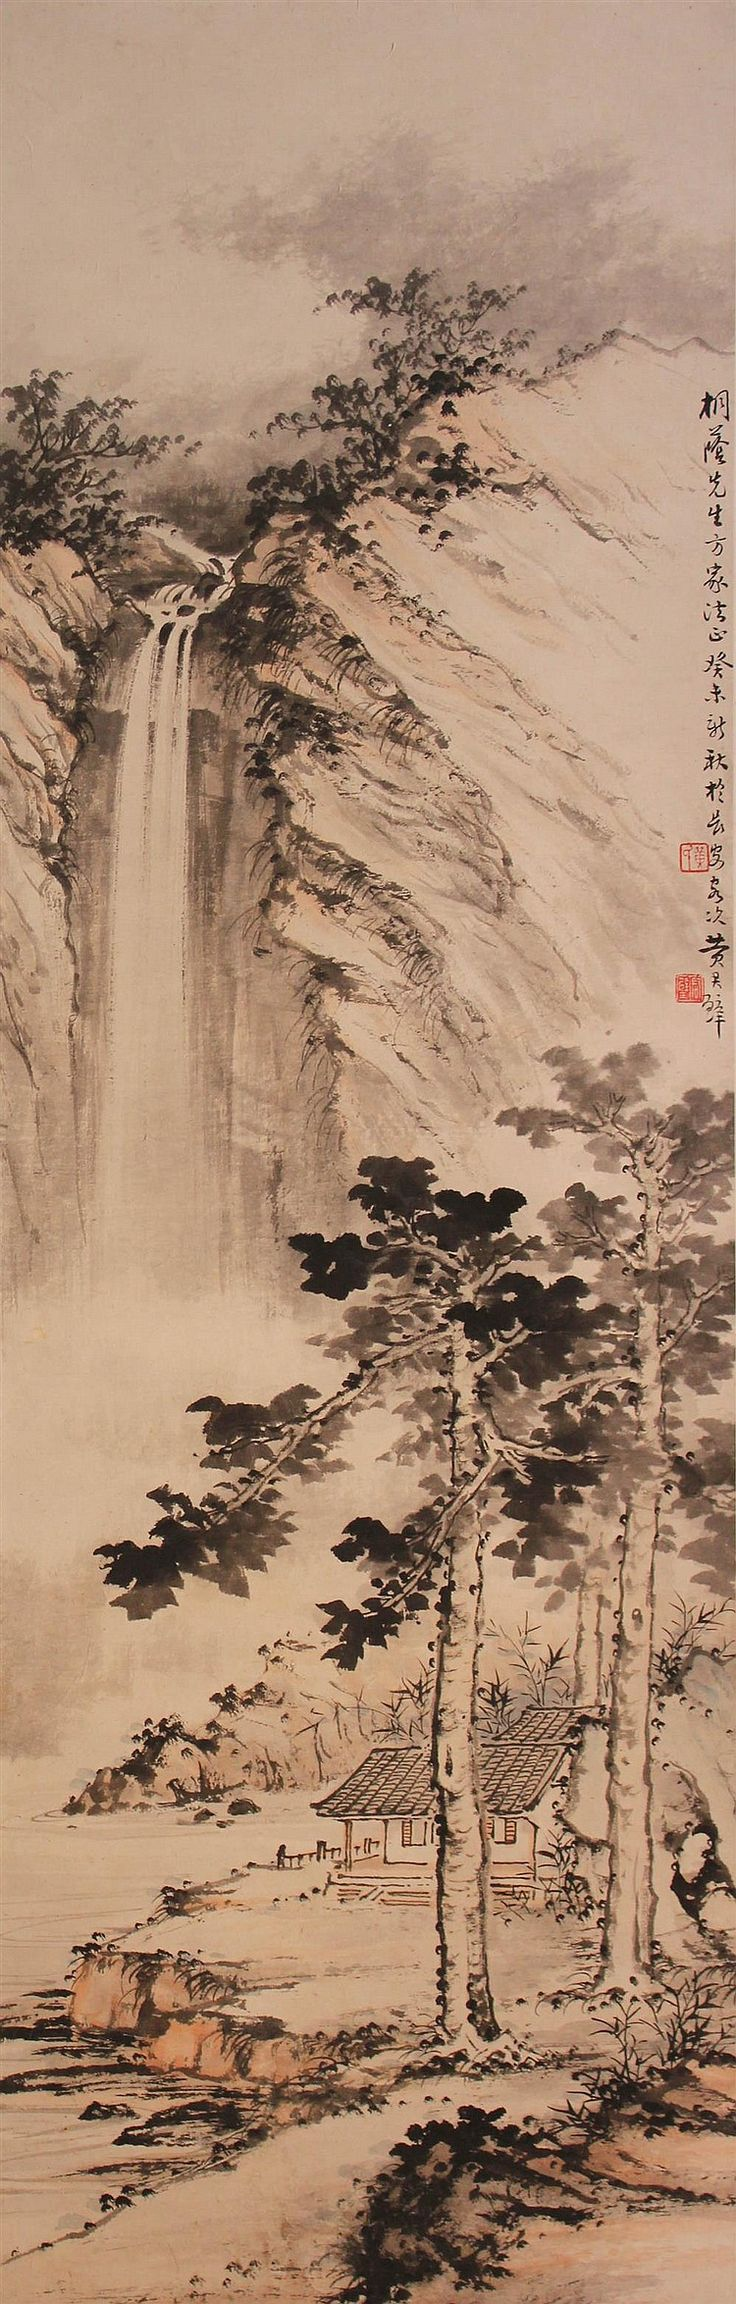 """HUANG JUNBI (CHINESE, 1898-1991) LANDSCAPE, 1943 Ink on paper mounted on hanging scroll: 32 3/4 x 10 1/2 in.Ink on paper mounted on hanging scroll: 32 3/4 x 10 1/2 in.  Upper right inscribed in Chinese """"Painted Autumn 1943 in Xian, dedicated to Mr. Tong Yin"""" with two seals 黃君璧/癸未新秋於長安客次/黃氏/君璧"""